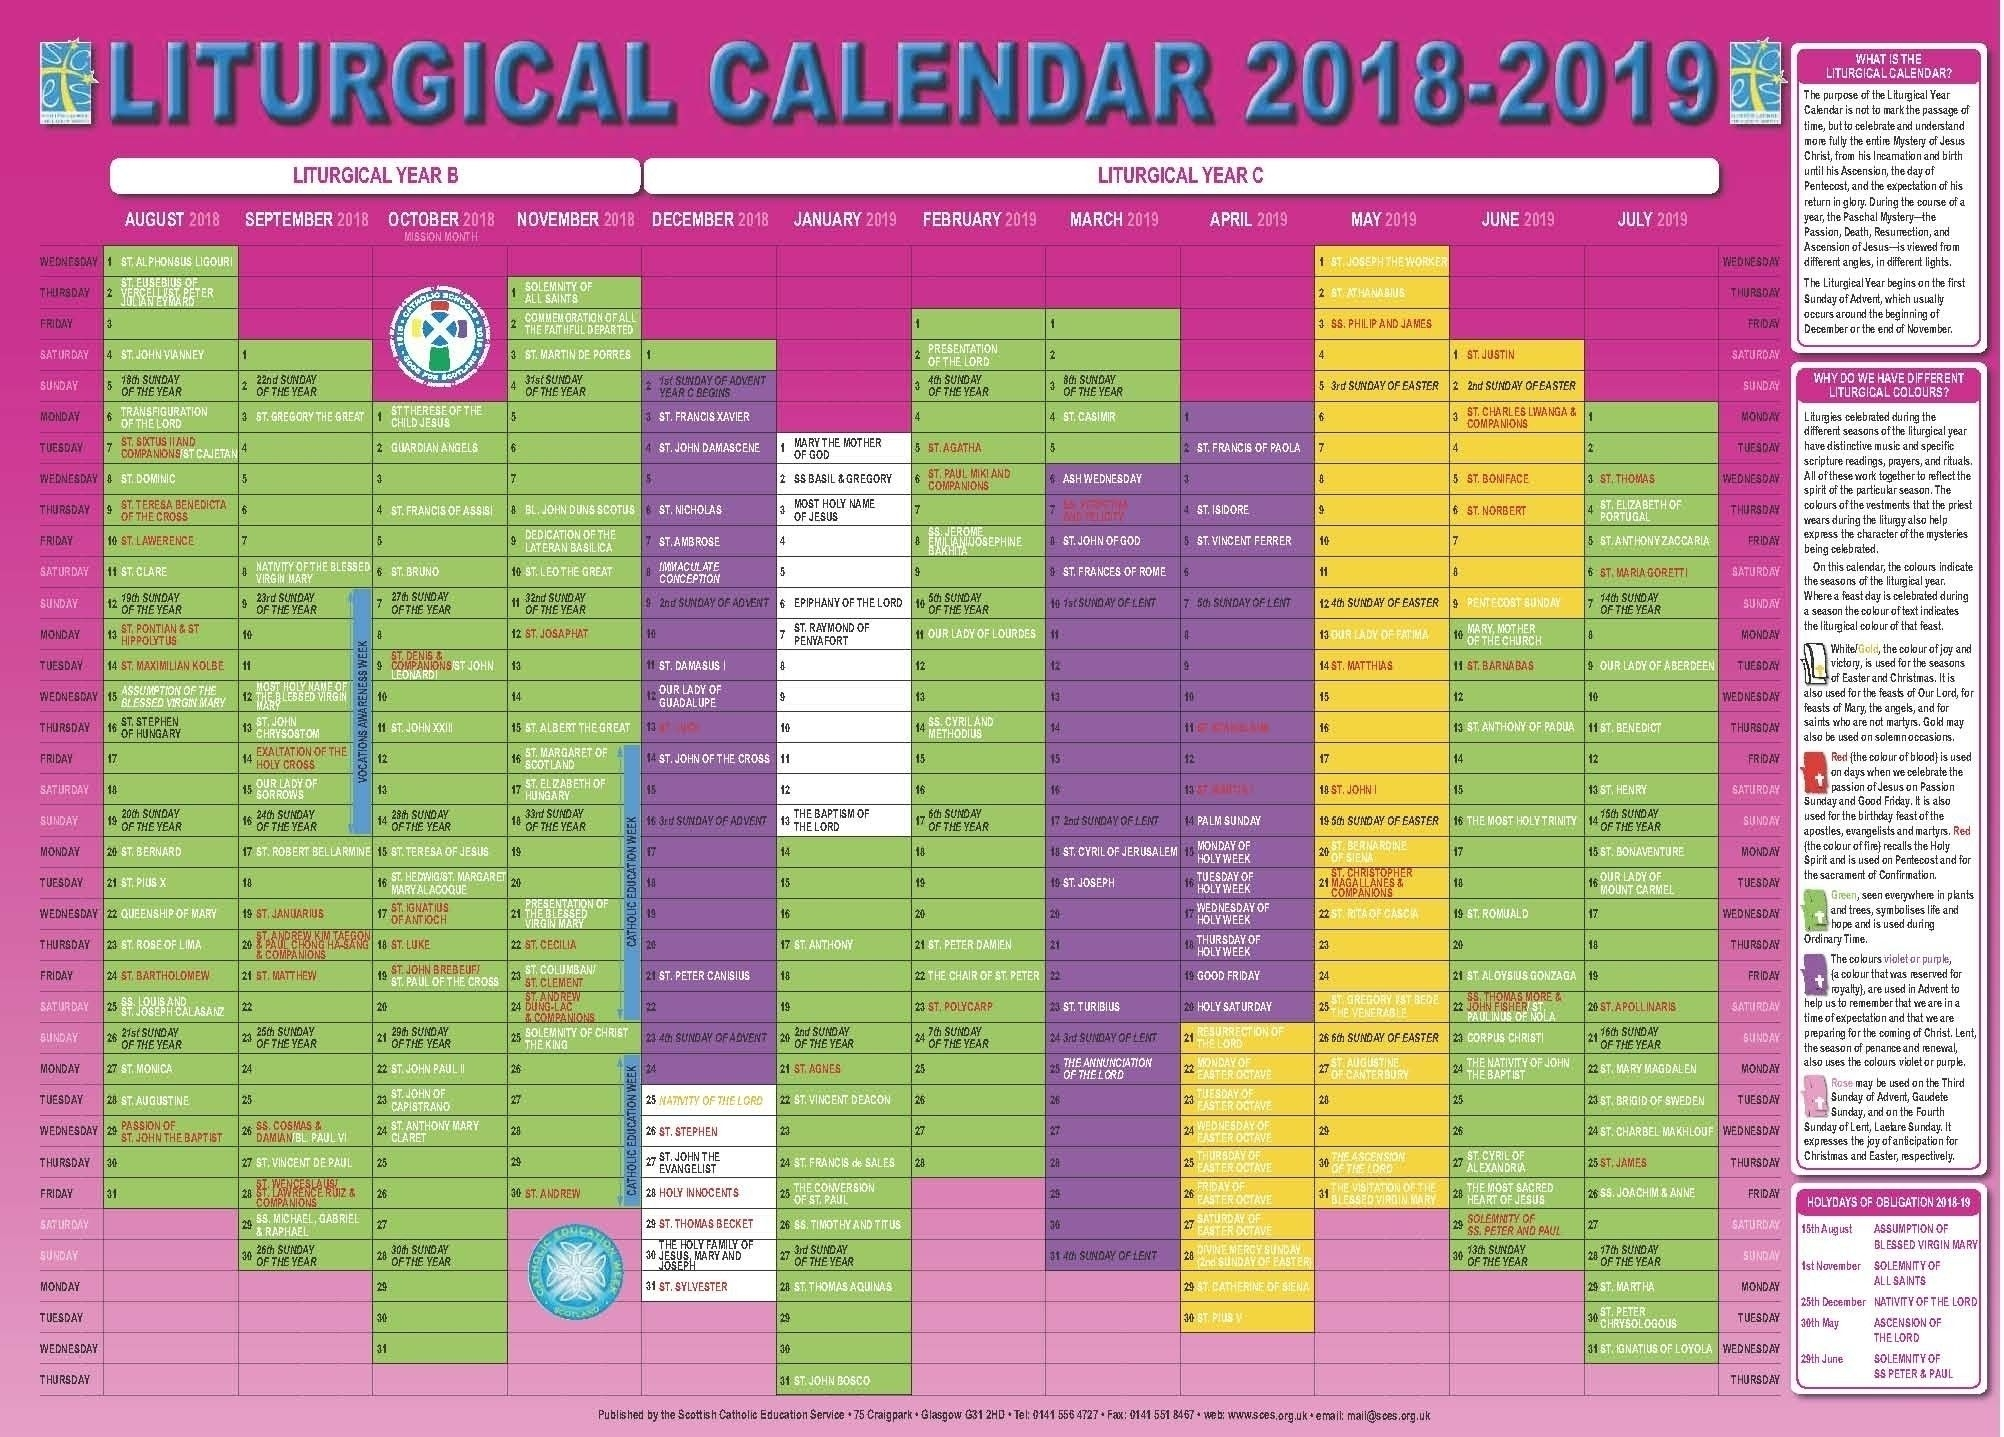 Free Printable Liturgical Calendar In 2020 | Catholic inside Free Catholic Calender For 2020